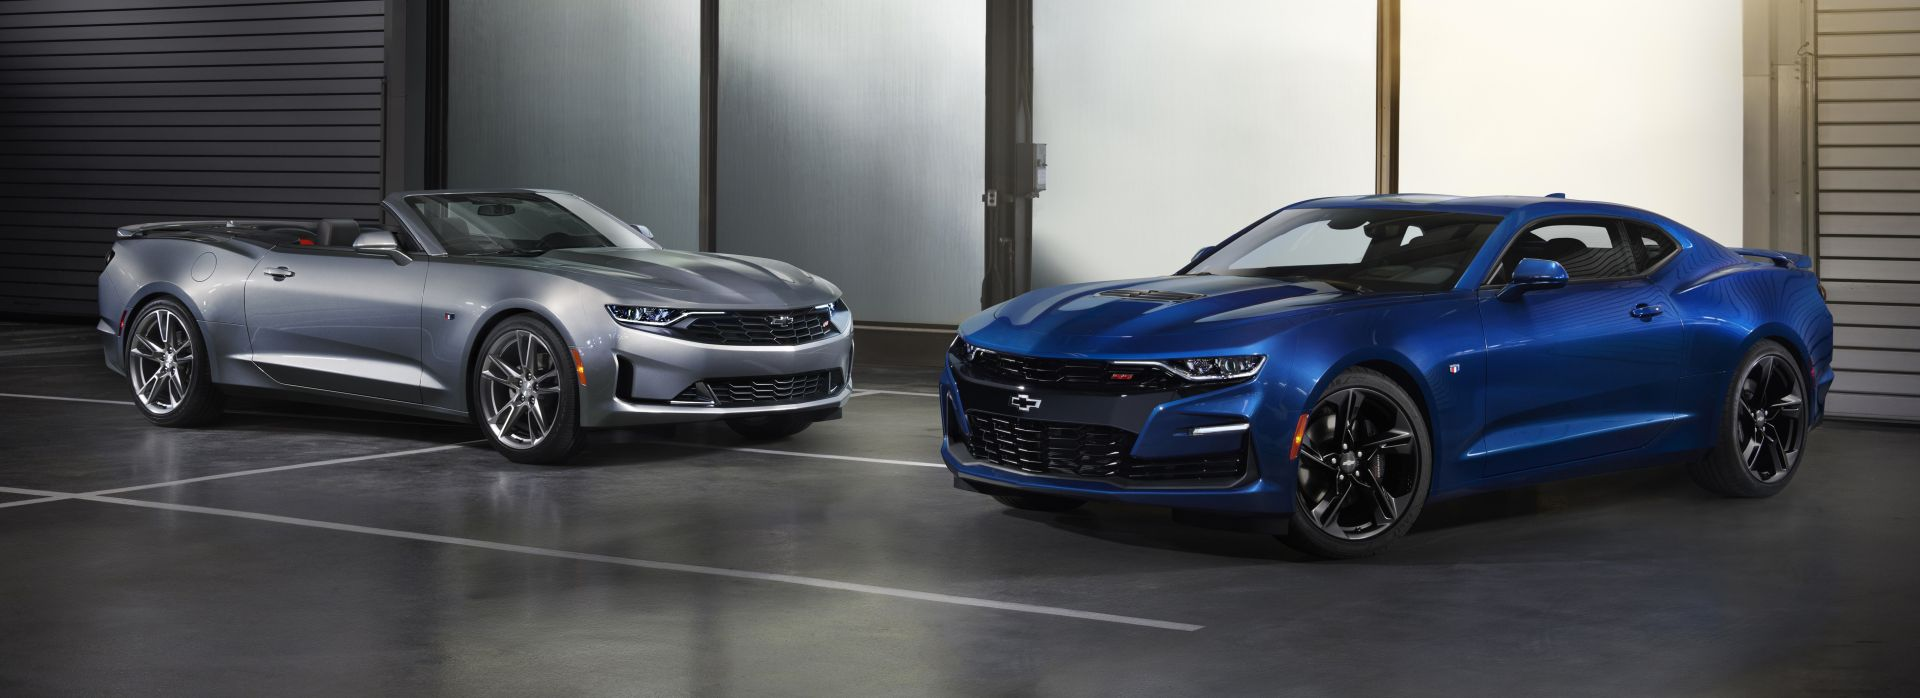 Chevrolet Camaro Specs Amp Photos 2018 2019 Autoevolution